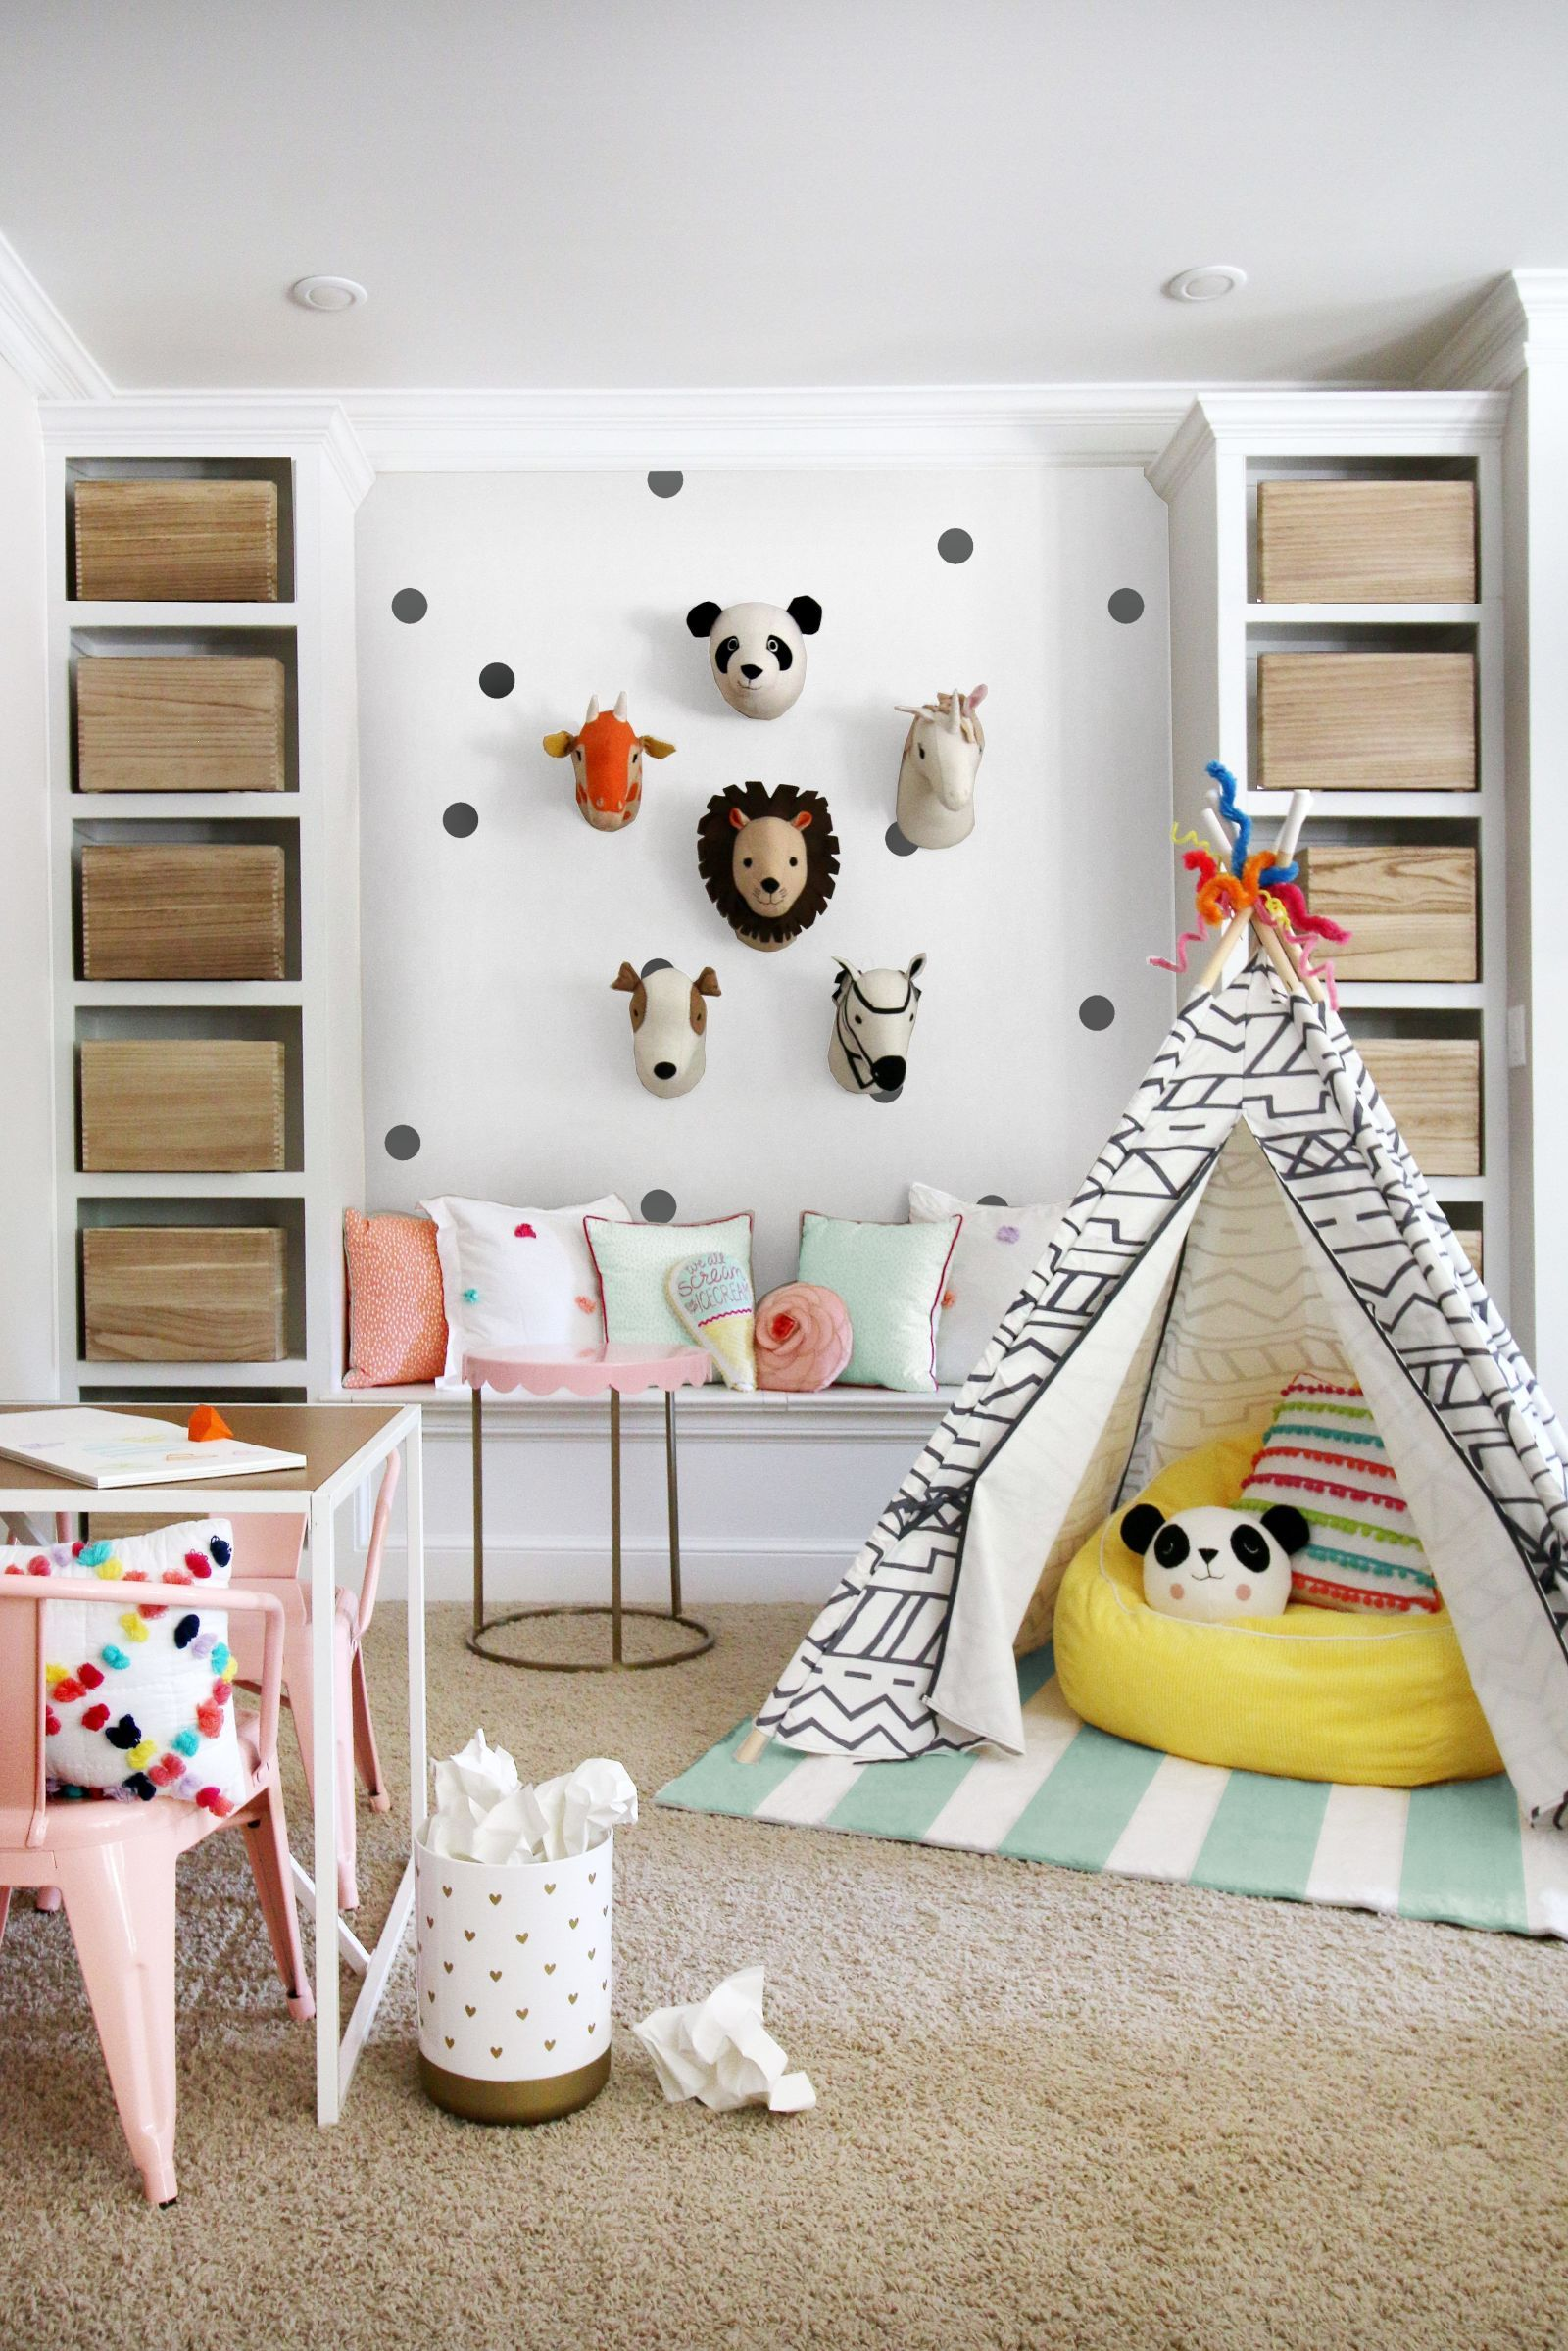 Frugal tips for organizing kids rooms thrifty nw mom fresh bedrooms - 6 Totally Fresh Decorating Ideas For The Kids Playroom